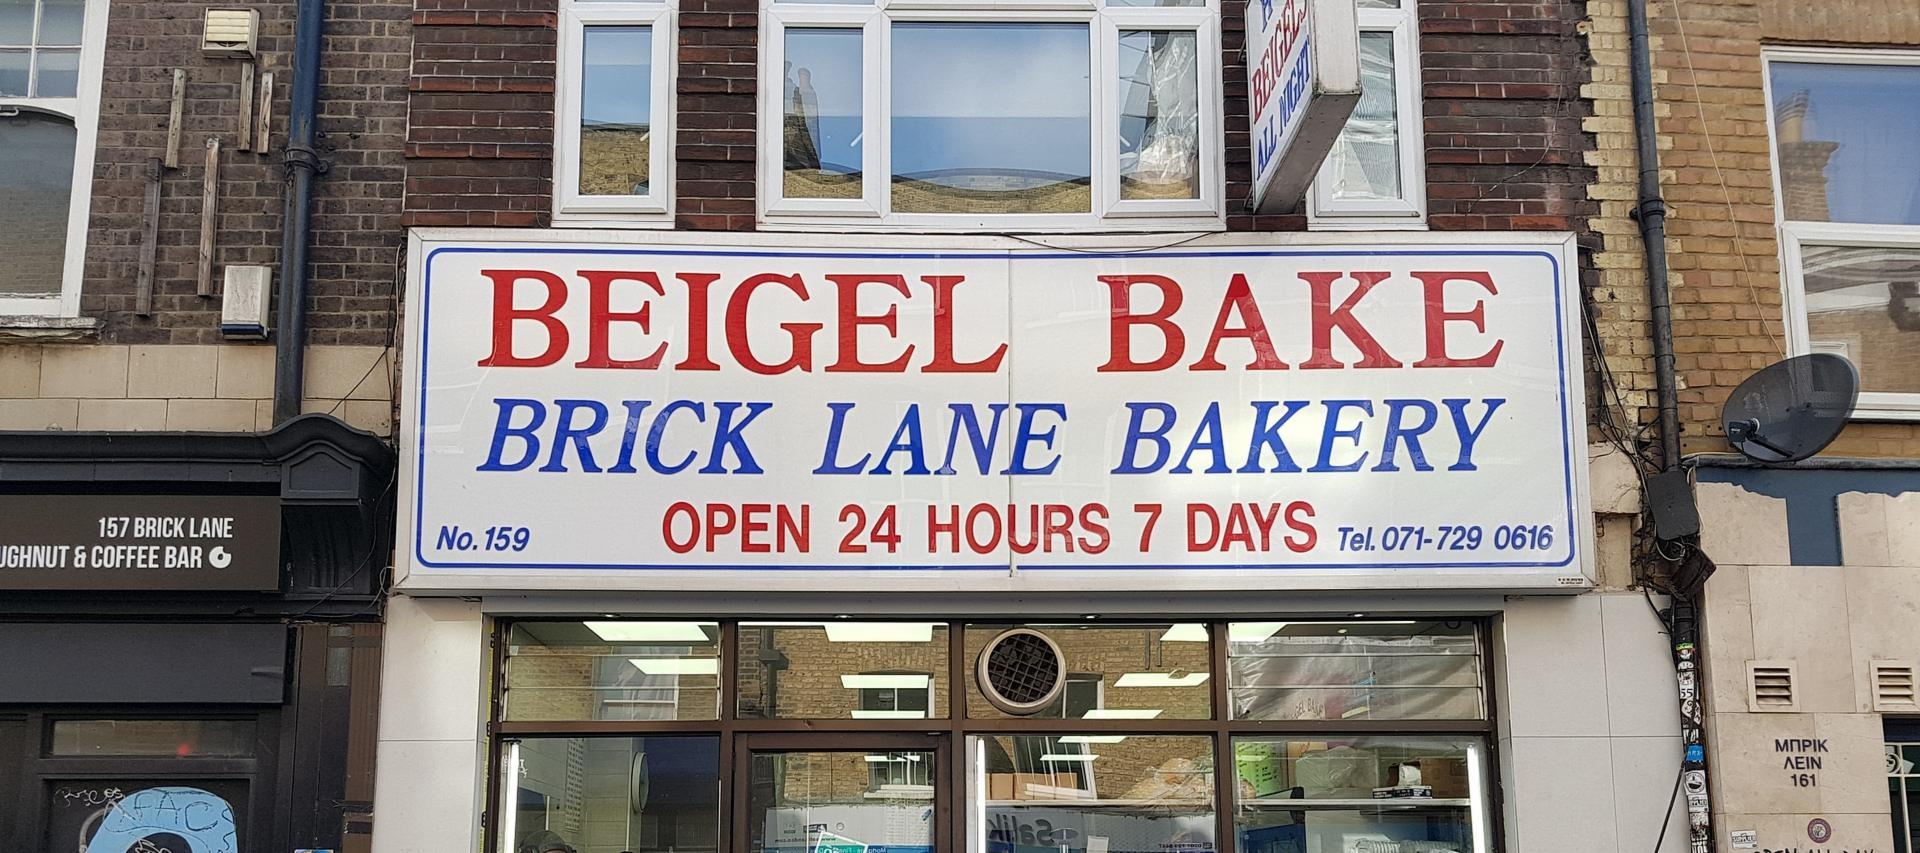 Beigel Bake Shop in London | 6 Alternative Things To Do in London